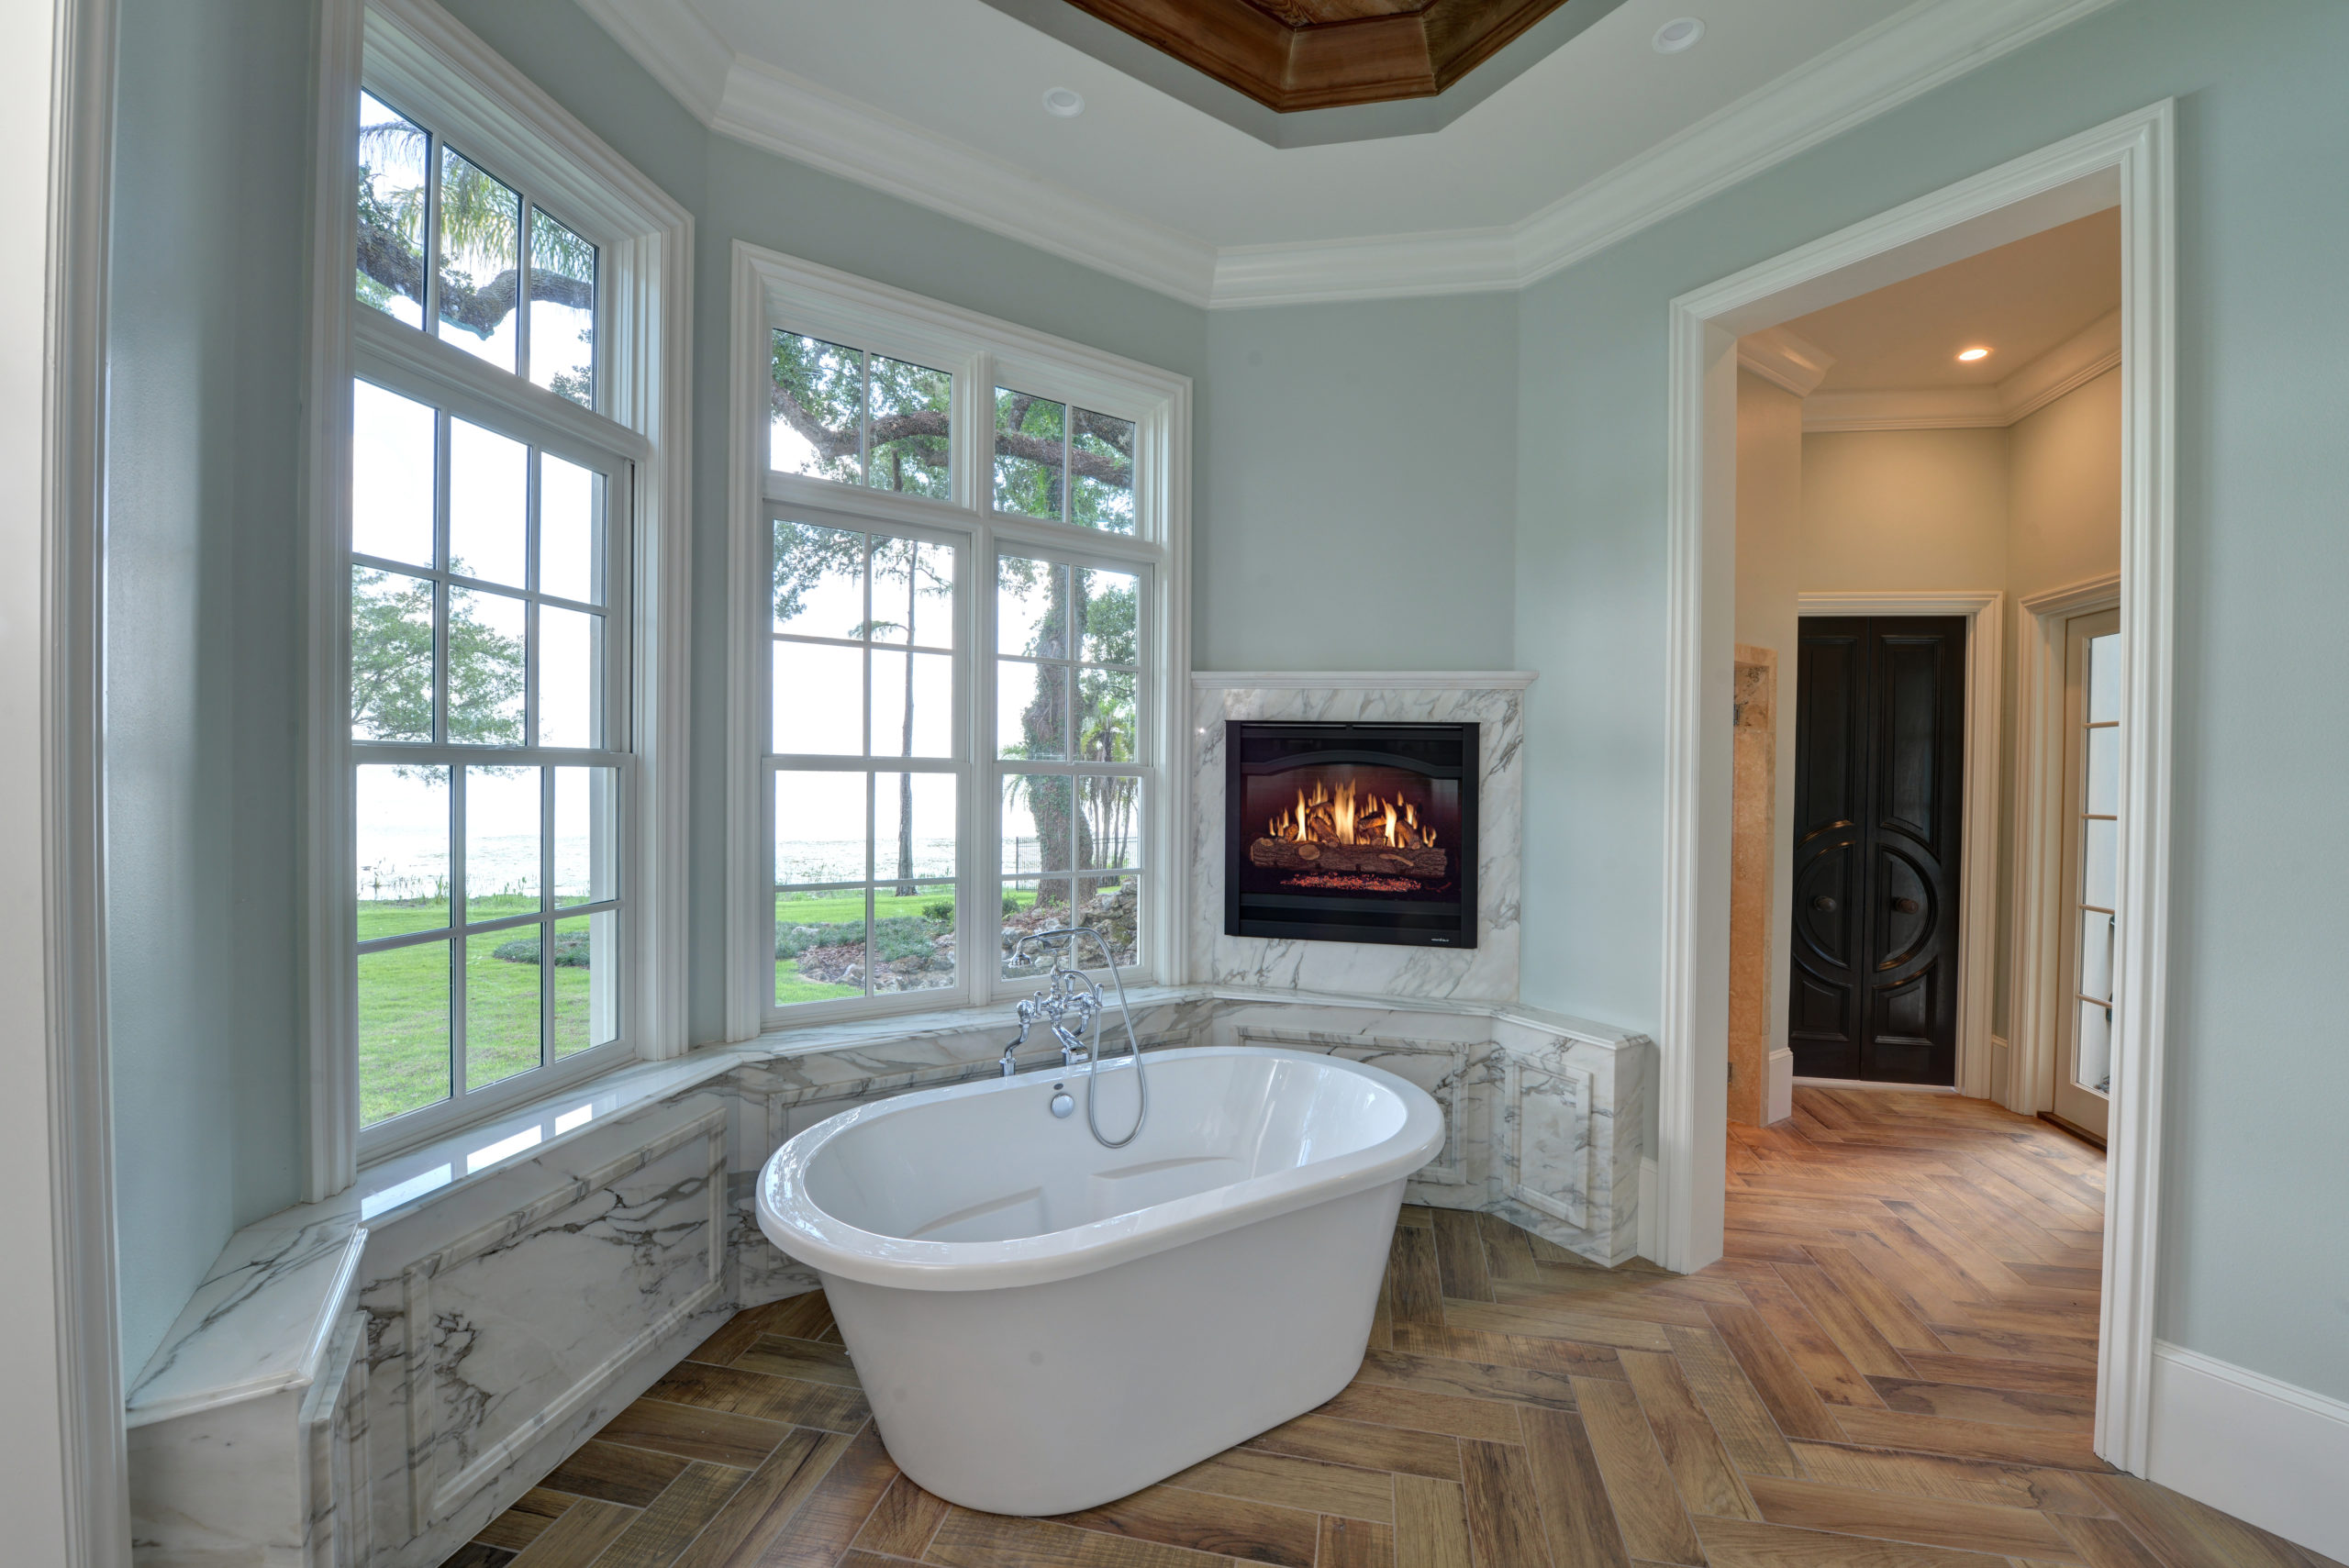 Luxurious bathroom with jacuzzi tub and sitting place with fireplace